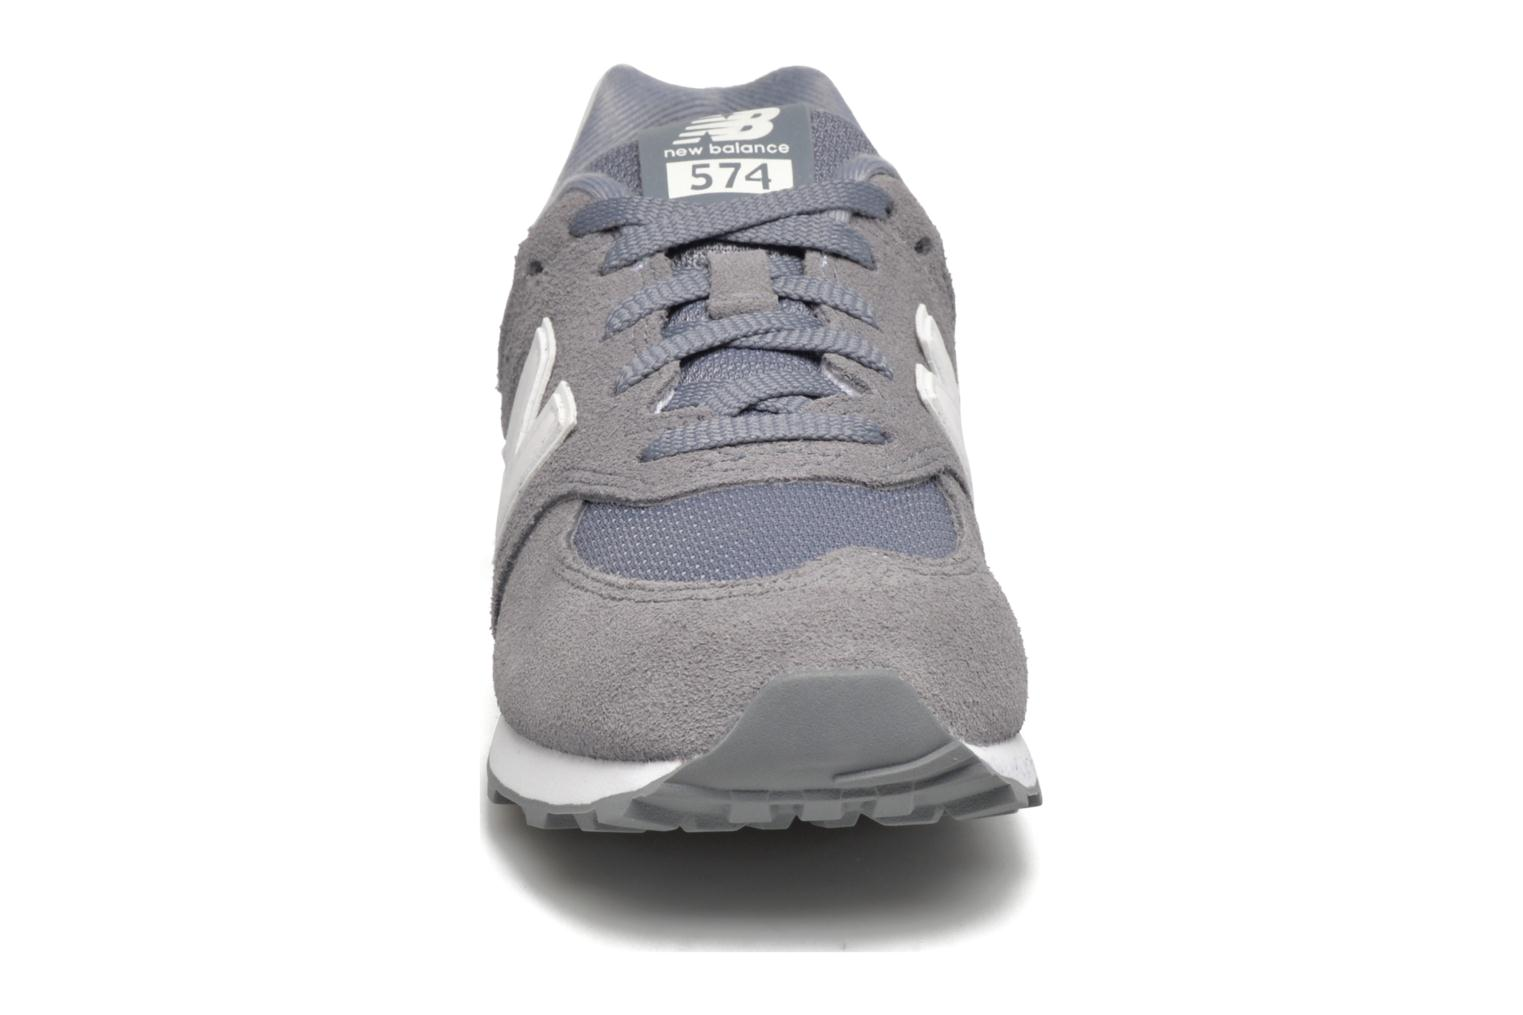 KL574 J CKP CKG Grey/White